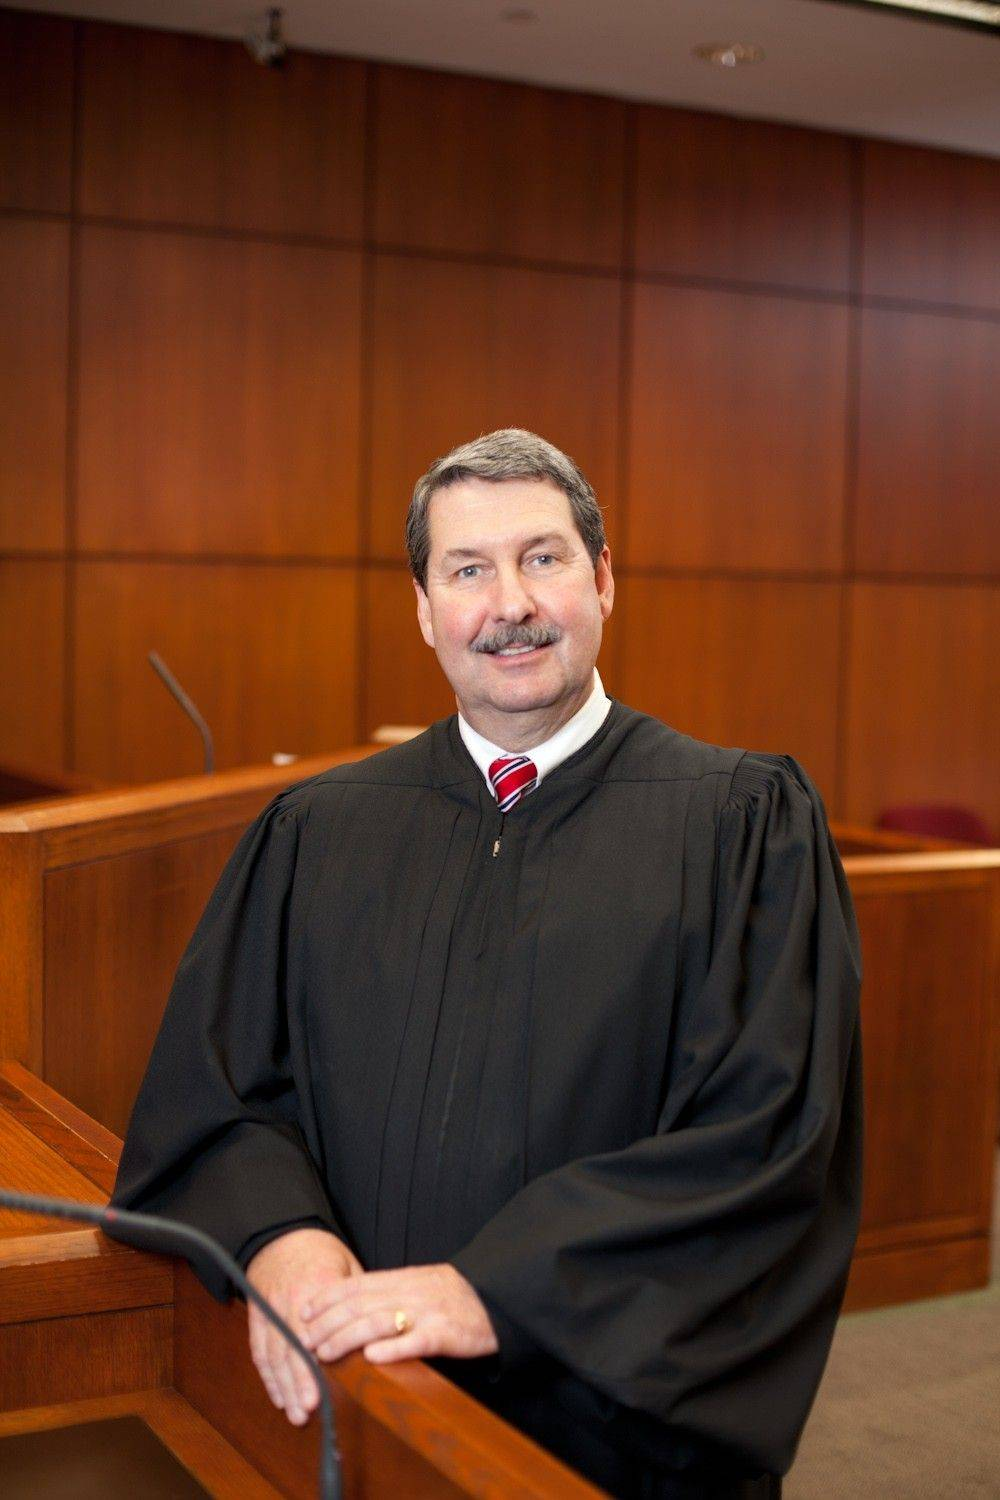 DuPage judges spend tax dollars on pricey robes